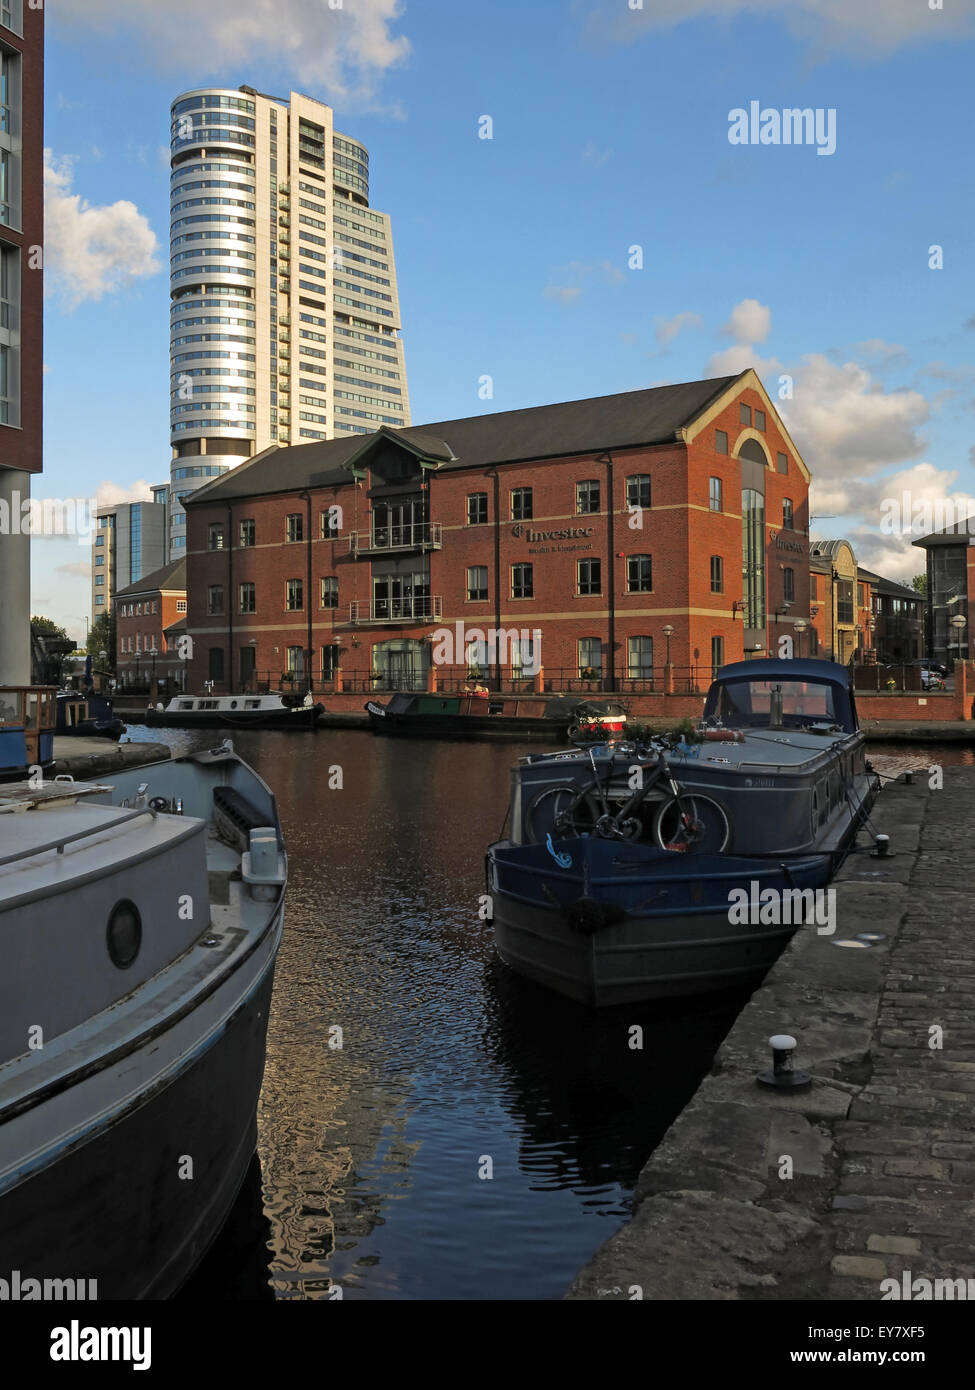 United Kingdom,UK,Liverpool,Canal,old,new,building,buildings,evening,sunshine,tourist,area,Granary,water,taxi,Armouries,Clarence,Dock,docks,workspace,cafe,eating,restaurant,boardwalk,pier,newdock,waterside,boat,boats,Leeds wharf,Wharf lock,Great Britain,Leeds Liverpool Canal,Granary Wharf,GoTonySmith,houseboat,barge,barges,Buy Pictures of,Buy Images Of